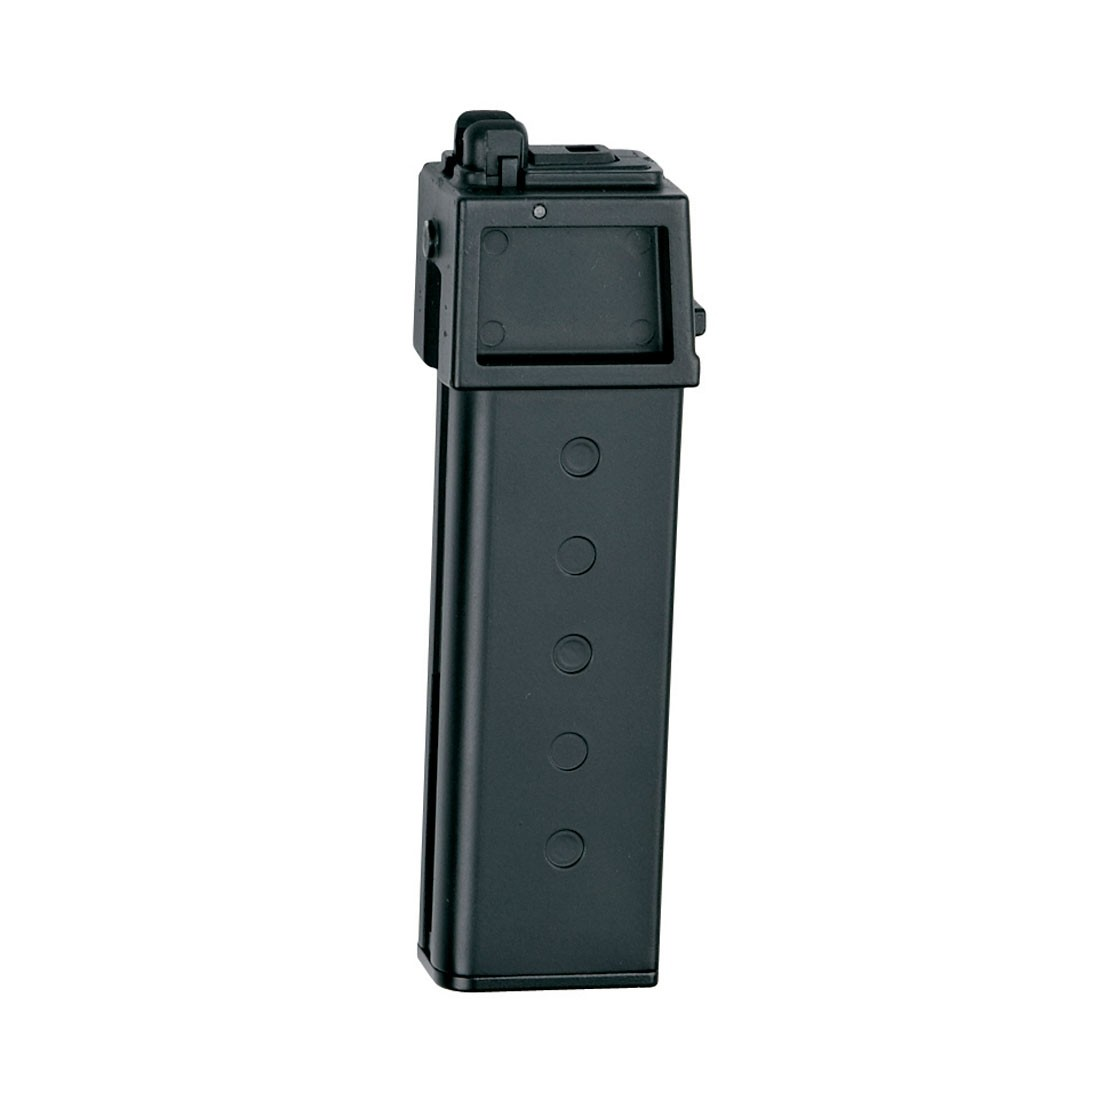 29 Rd. Gas magazine for the Special Teams Carbine airsoft